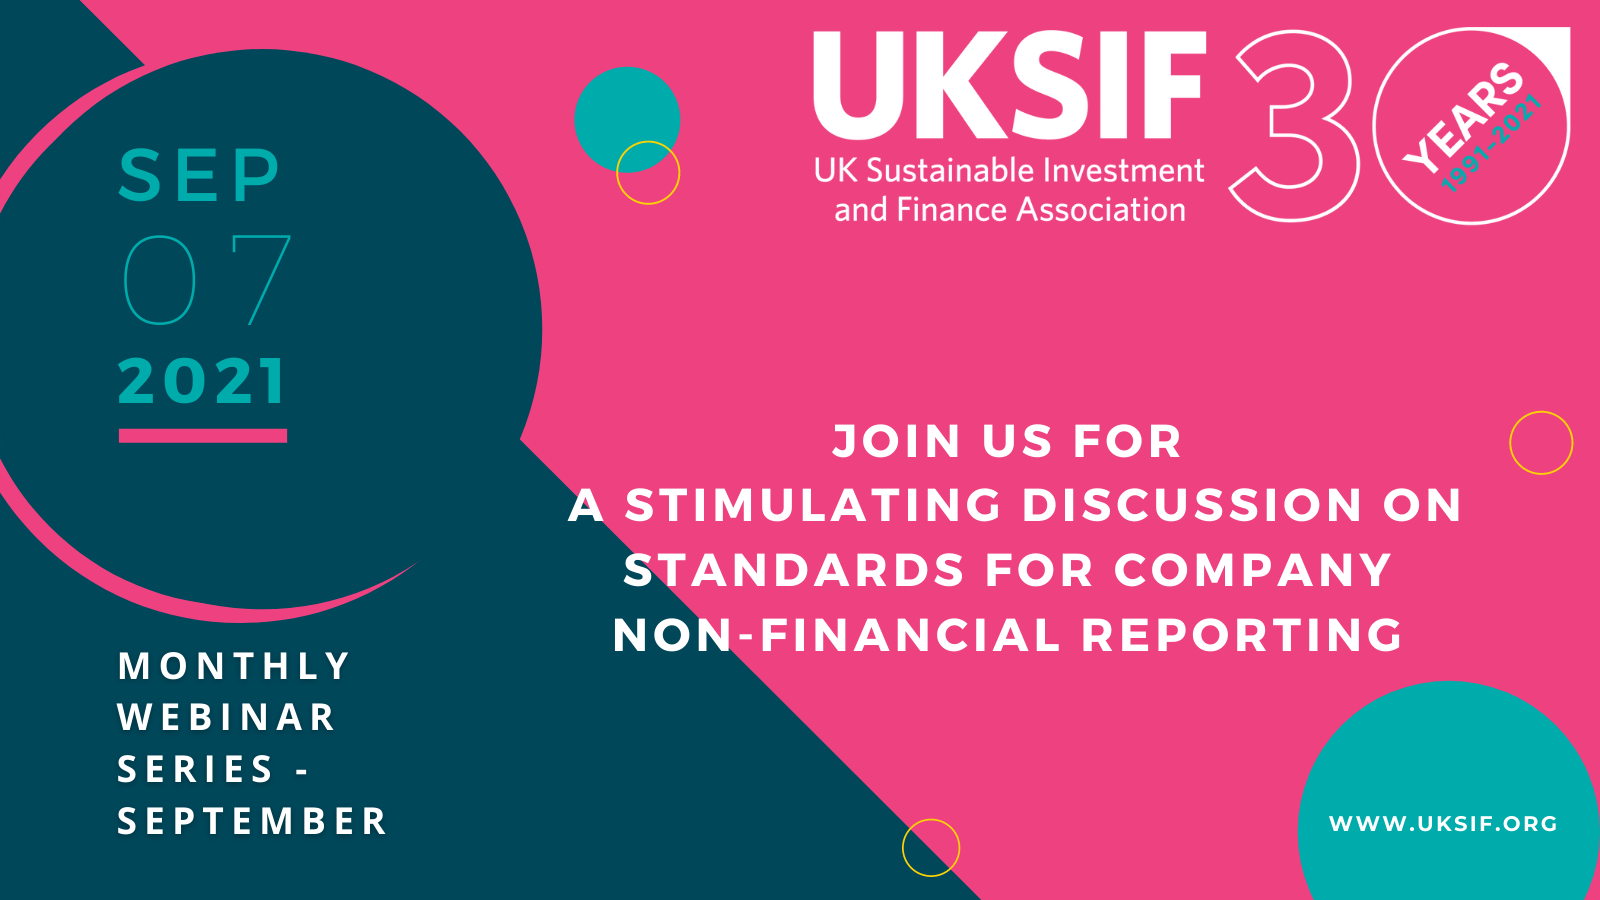 Standards for company non-financial reporting - Preview Image